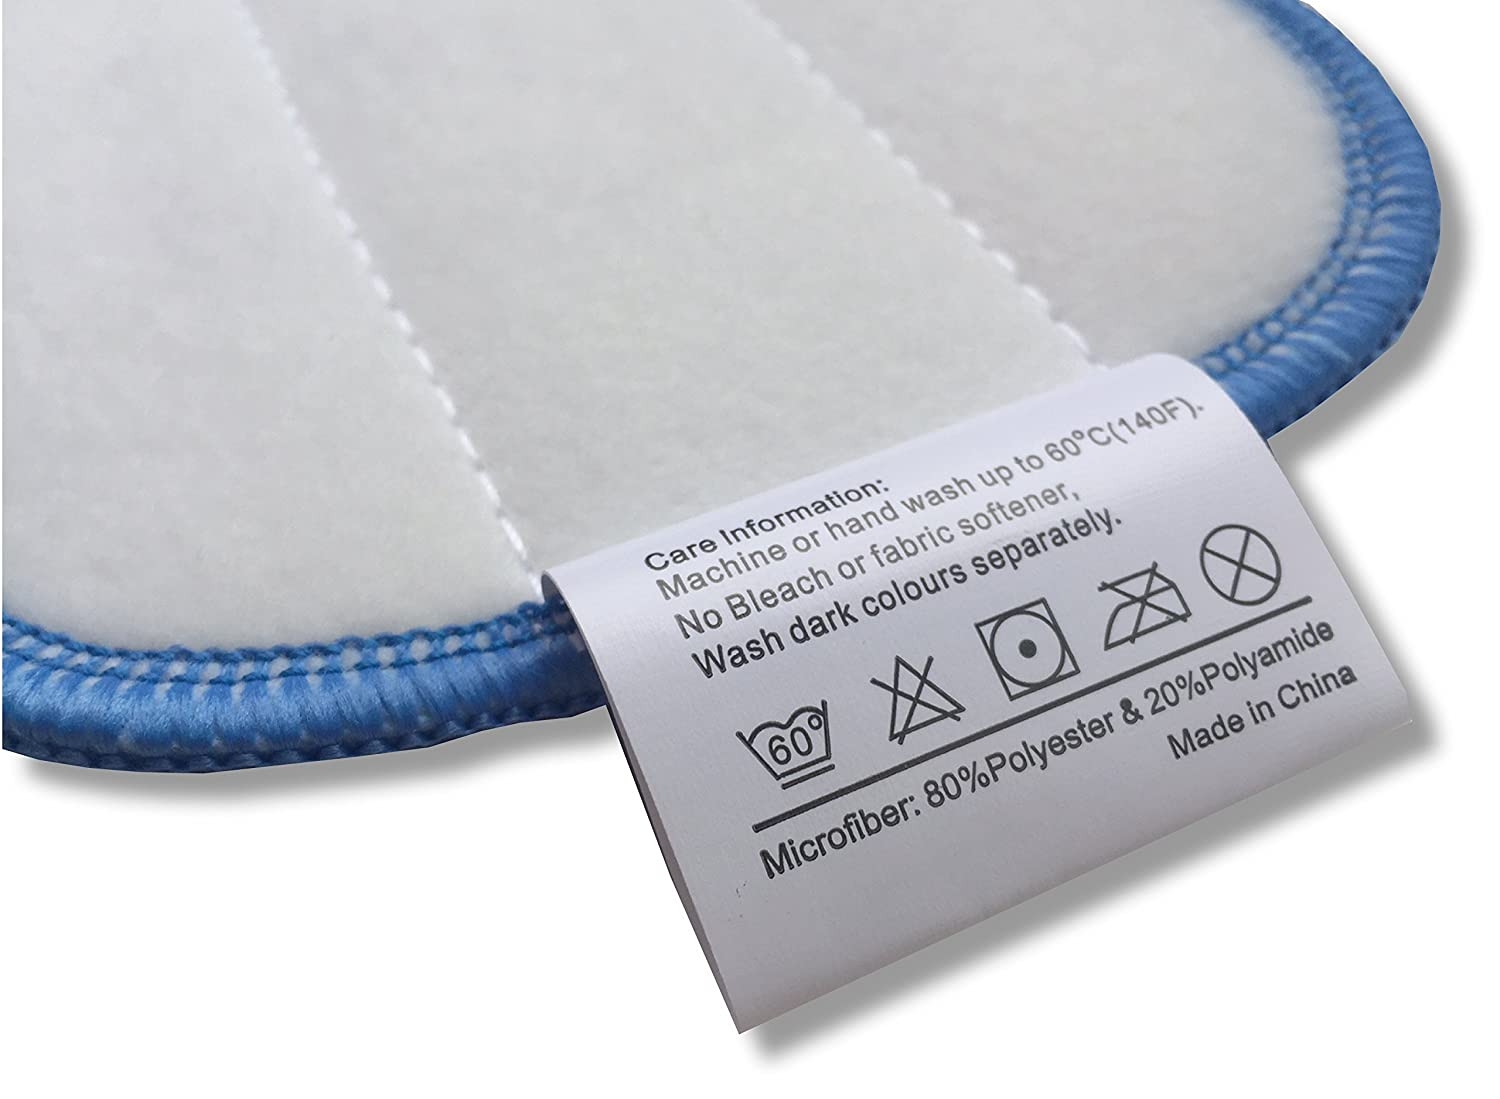 Commercial Grade 450 GSM Flat Replacement Heads for Wet Or Dry Floor Cleaning and Scrubbing MFP-18IN-MOP Microfiber Pros Reusable 18 Mop Pads 3 Pack and Bonus Cloth